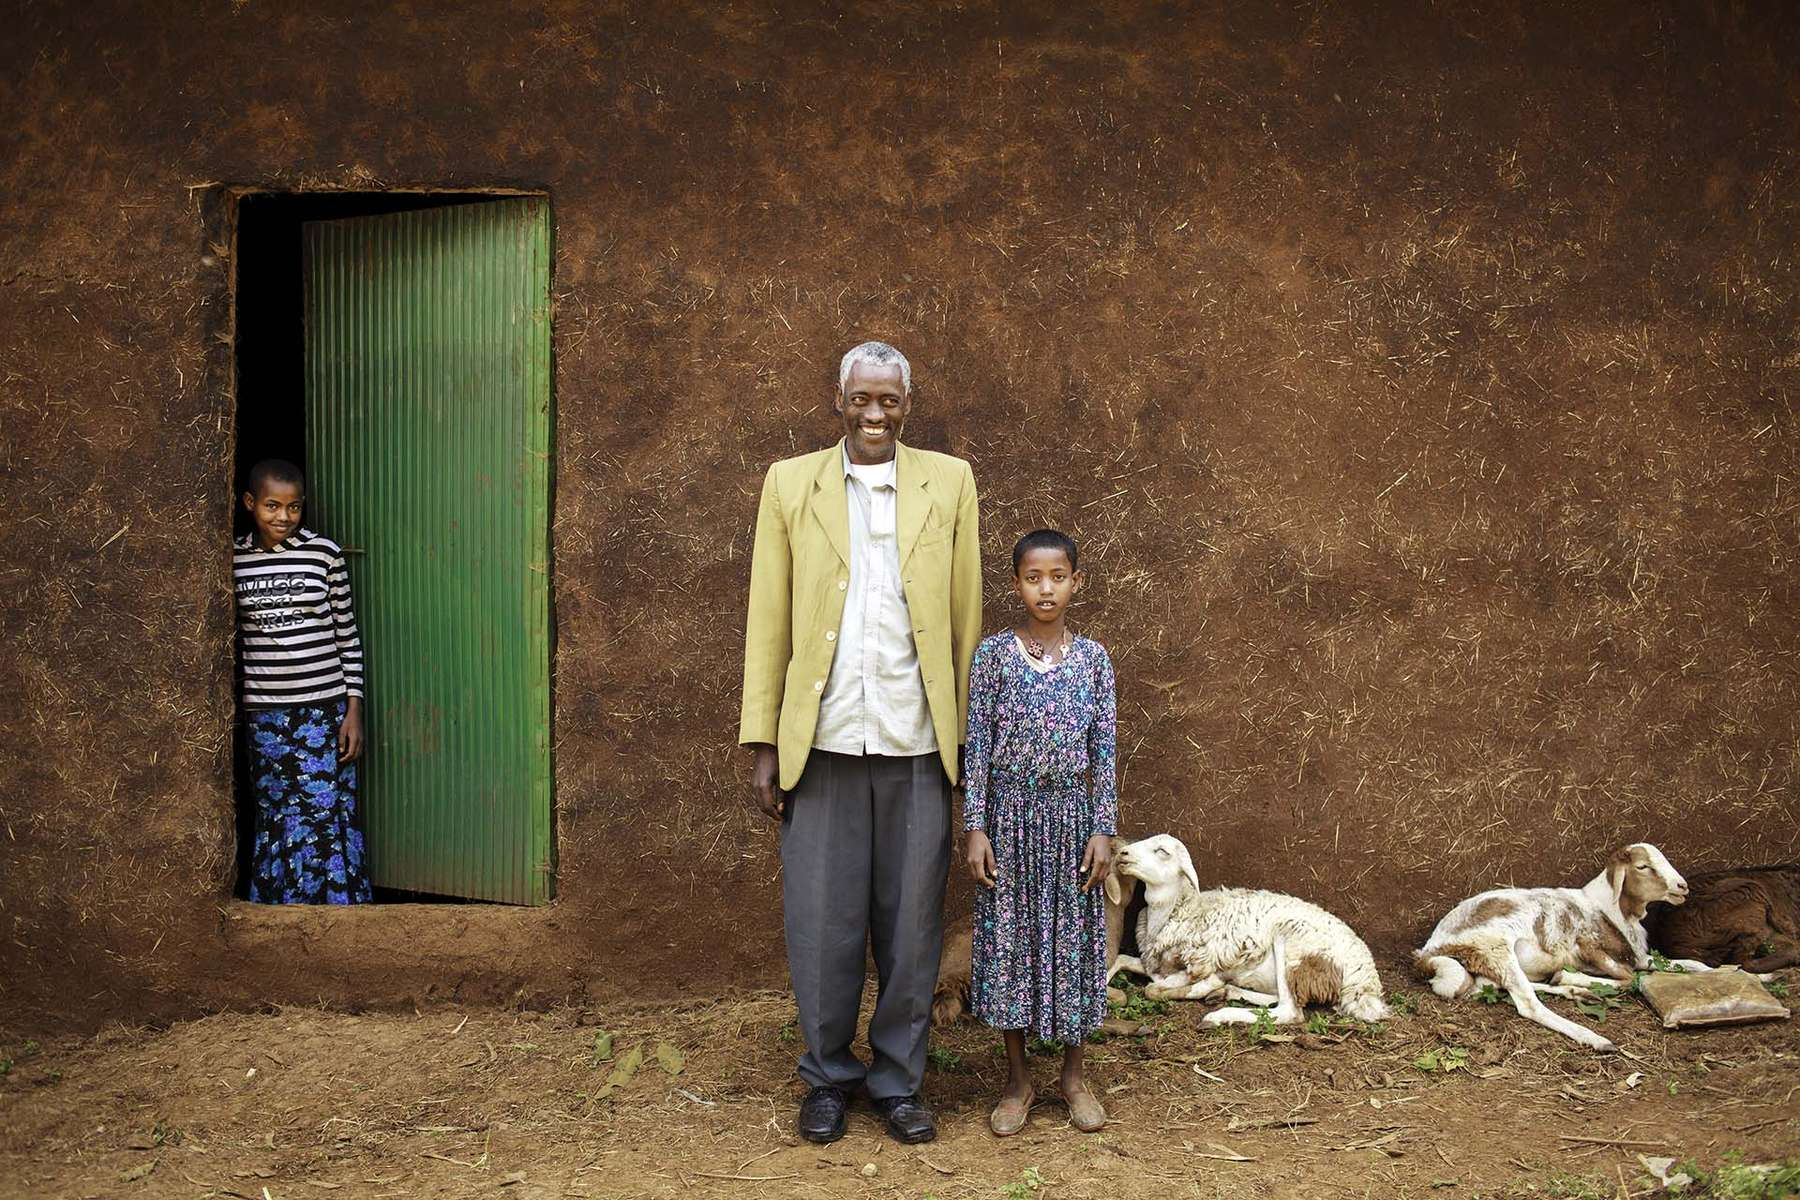 Negbaru Meheret, 42, poses for a photo with his daughters and newly-built warehouse in Womburma Village in Amhara region of Ethiopia January 21, 2011. He is a member Shindi Primary Cooperative. He used to sell his harvest at lower price, but now the cooperative pays the best price, and he has managed to earn enough money to build a new warehouse to store his harvest so he can sell it when the price is high. The cooperative participates in Purchase for Progress (P4P) by WFP. P4P in Ethiopia focuses on developing markets and helping farmers' cooperative members to produce more and market their crops so that they can engage more profitably and sustainably in markets.